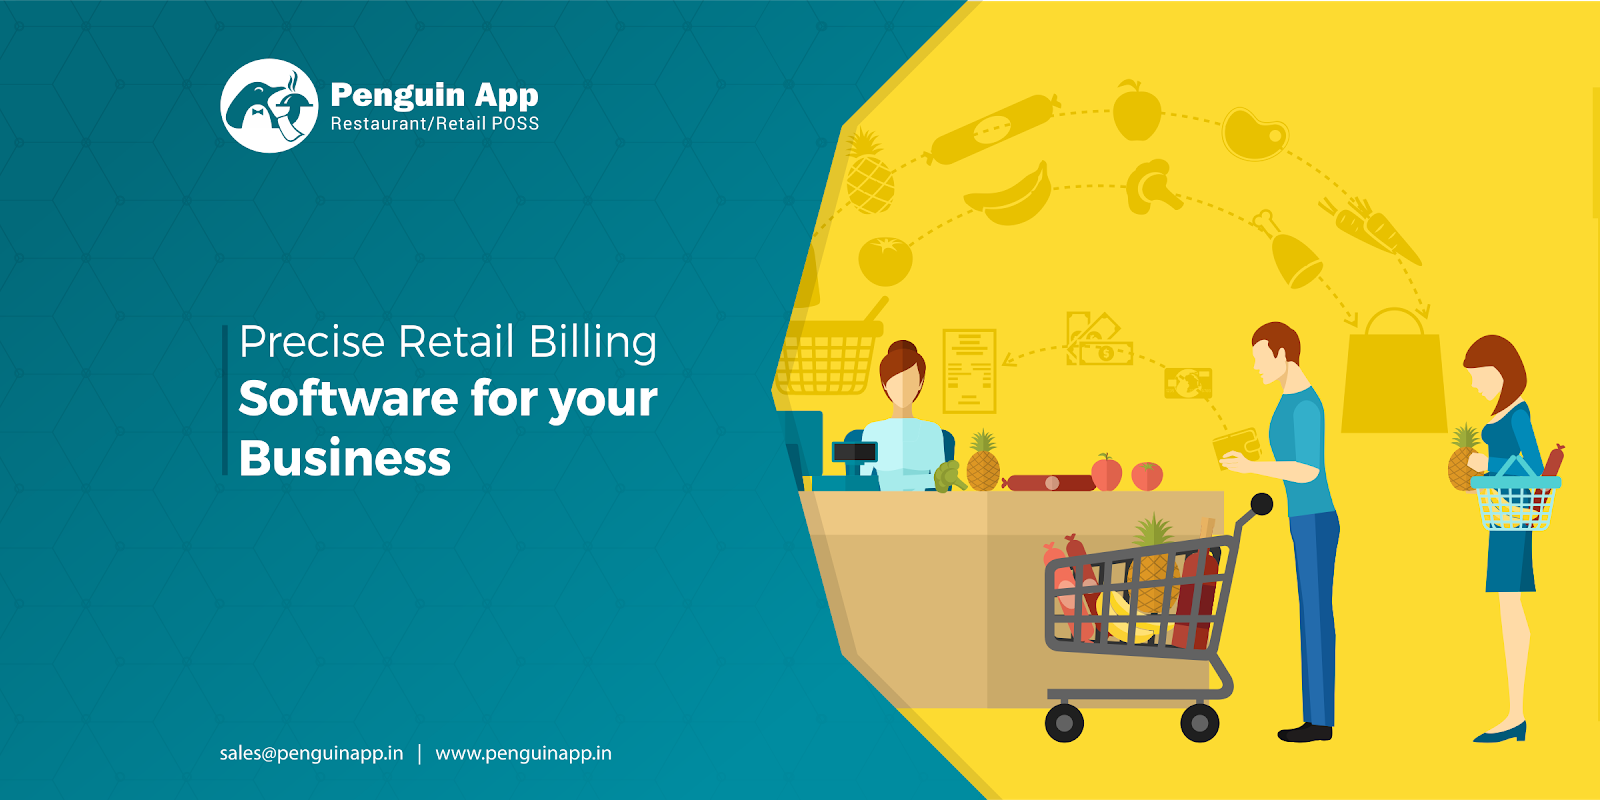 How to Pick Precise Retail Billing Software for your Business in 2019?